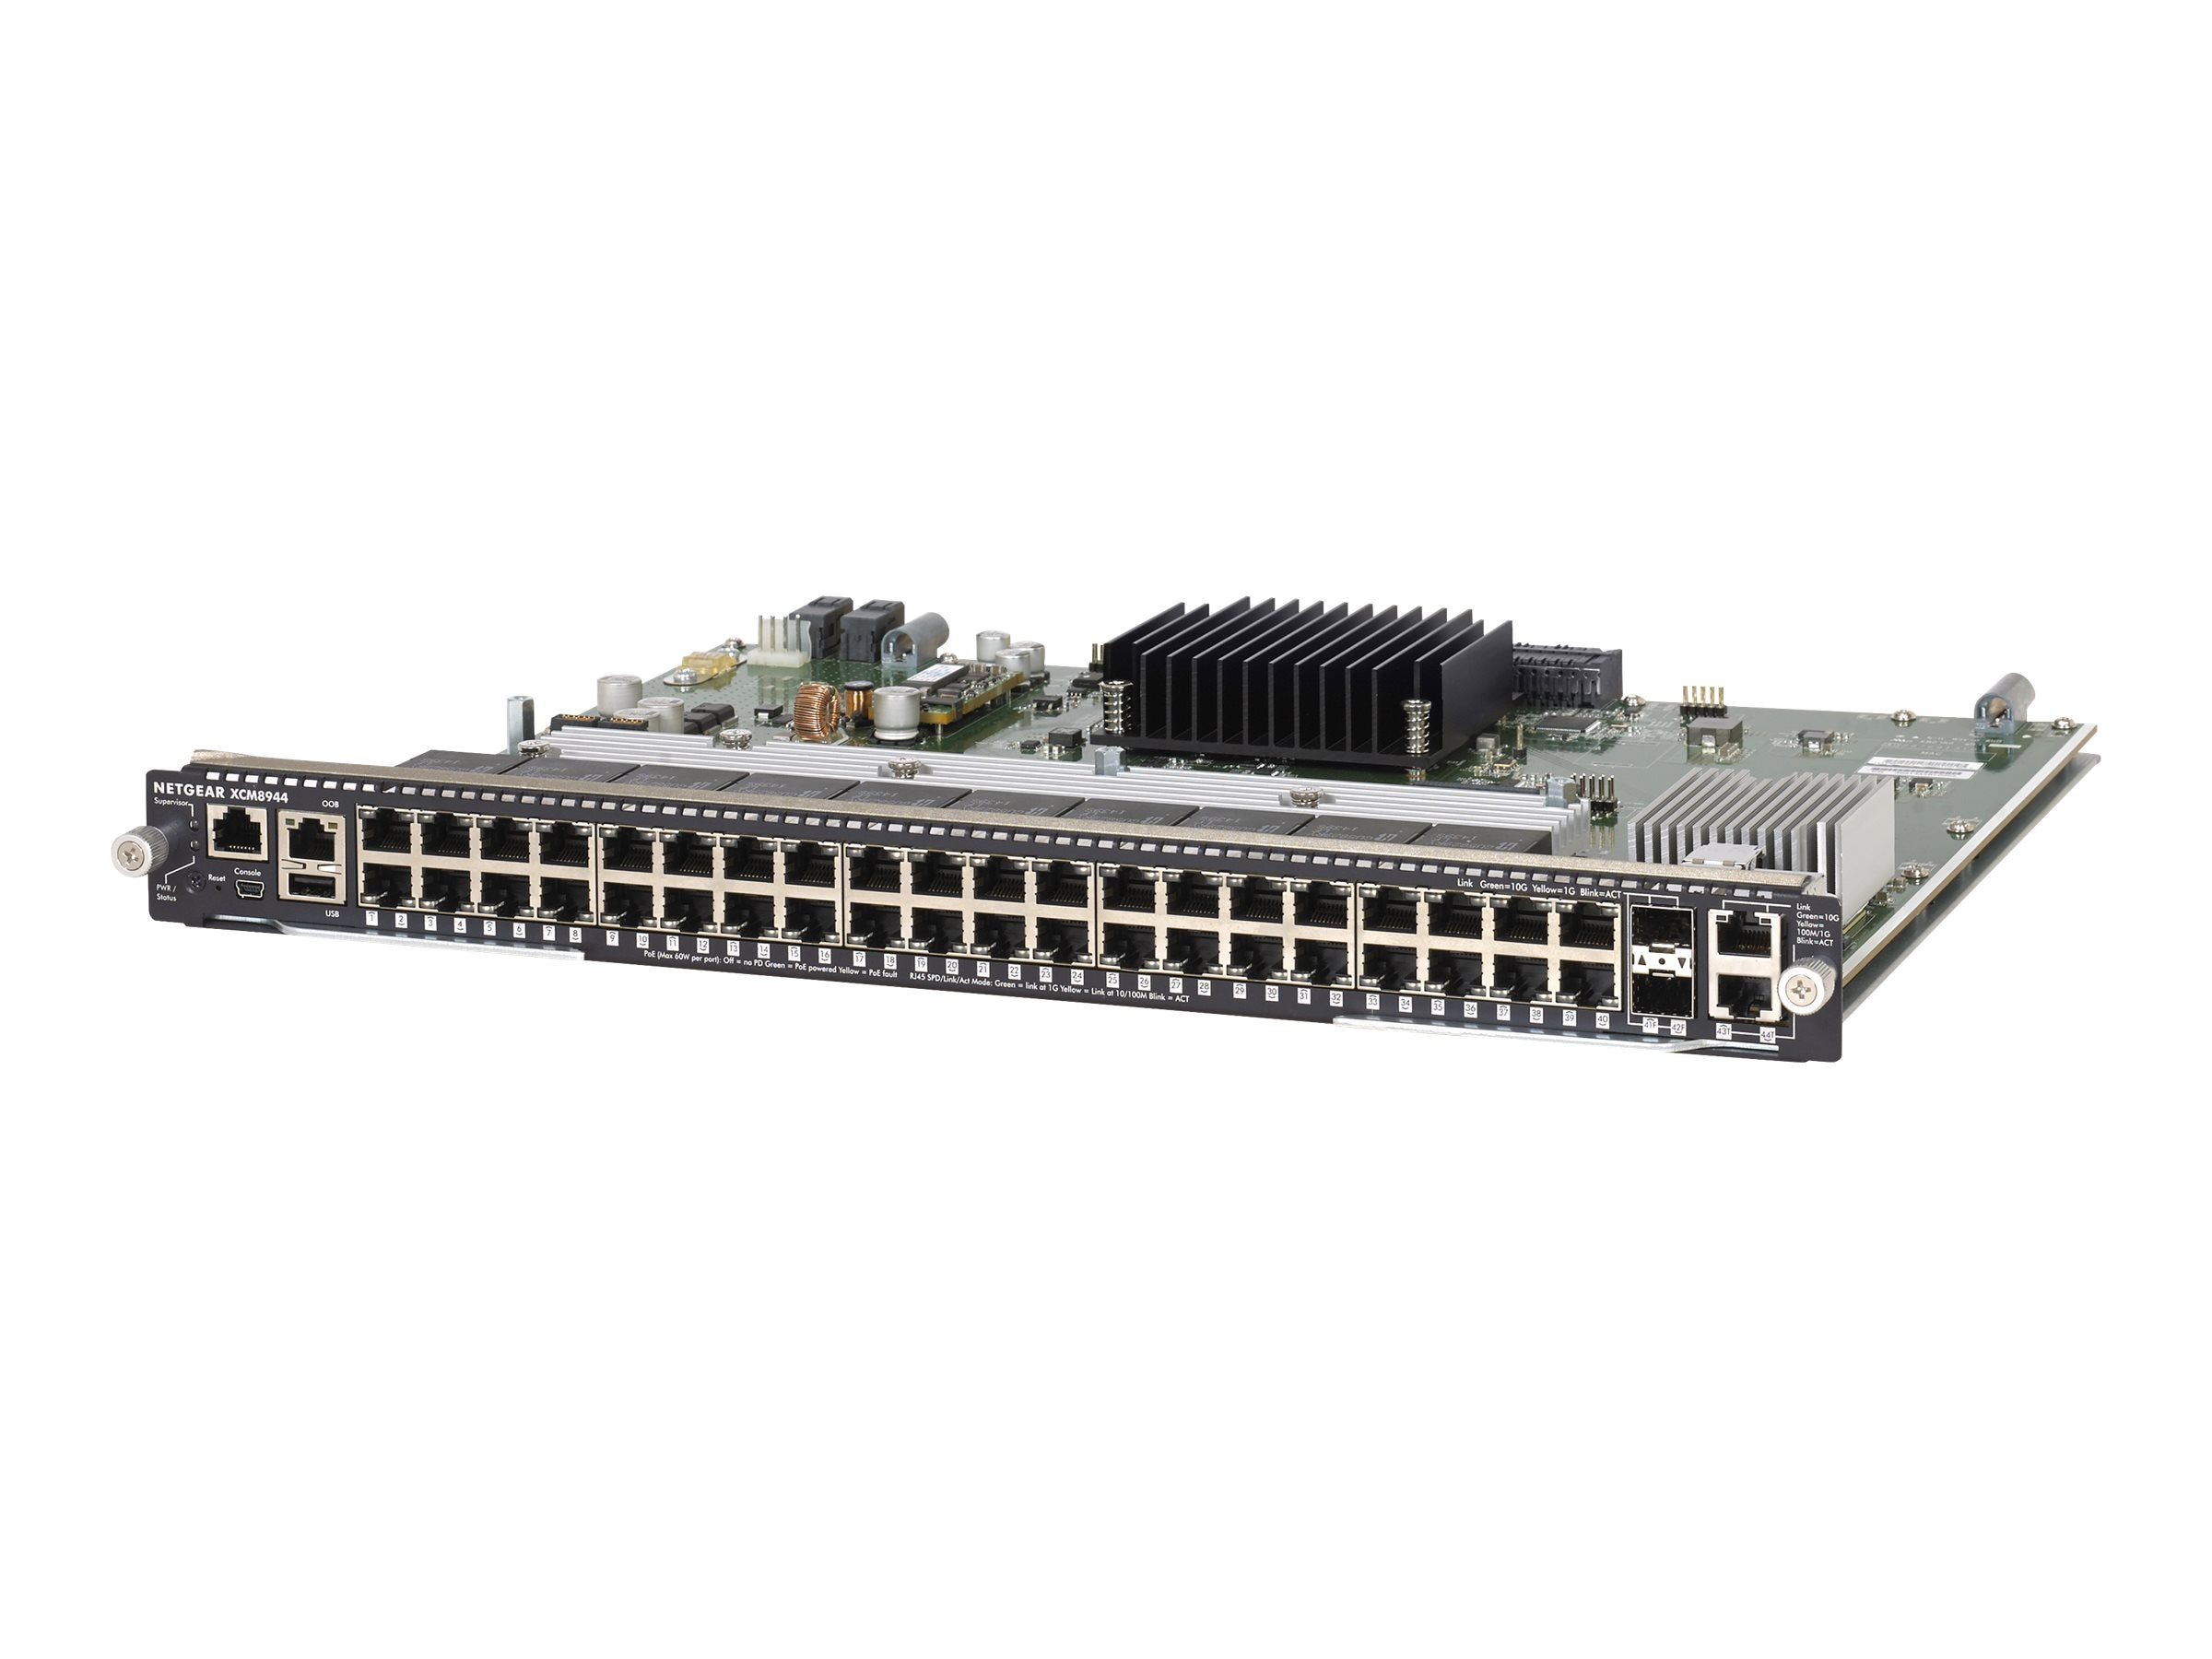 Netgear M6100 Chassis Series 40x1G and 4x10G Blade, XCM8944-10000S, 18366115, Network Switches